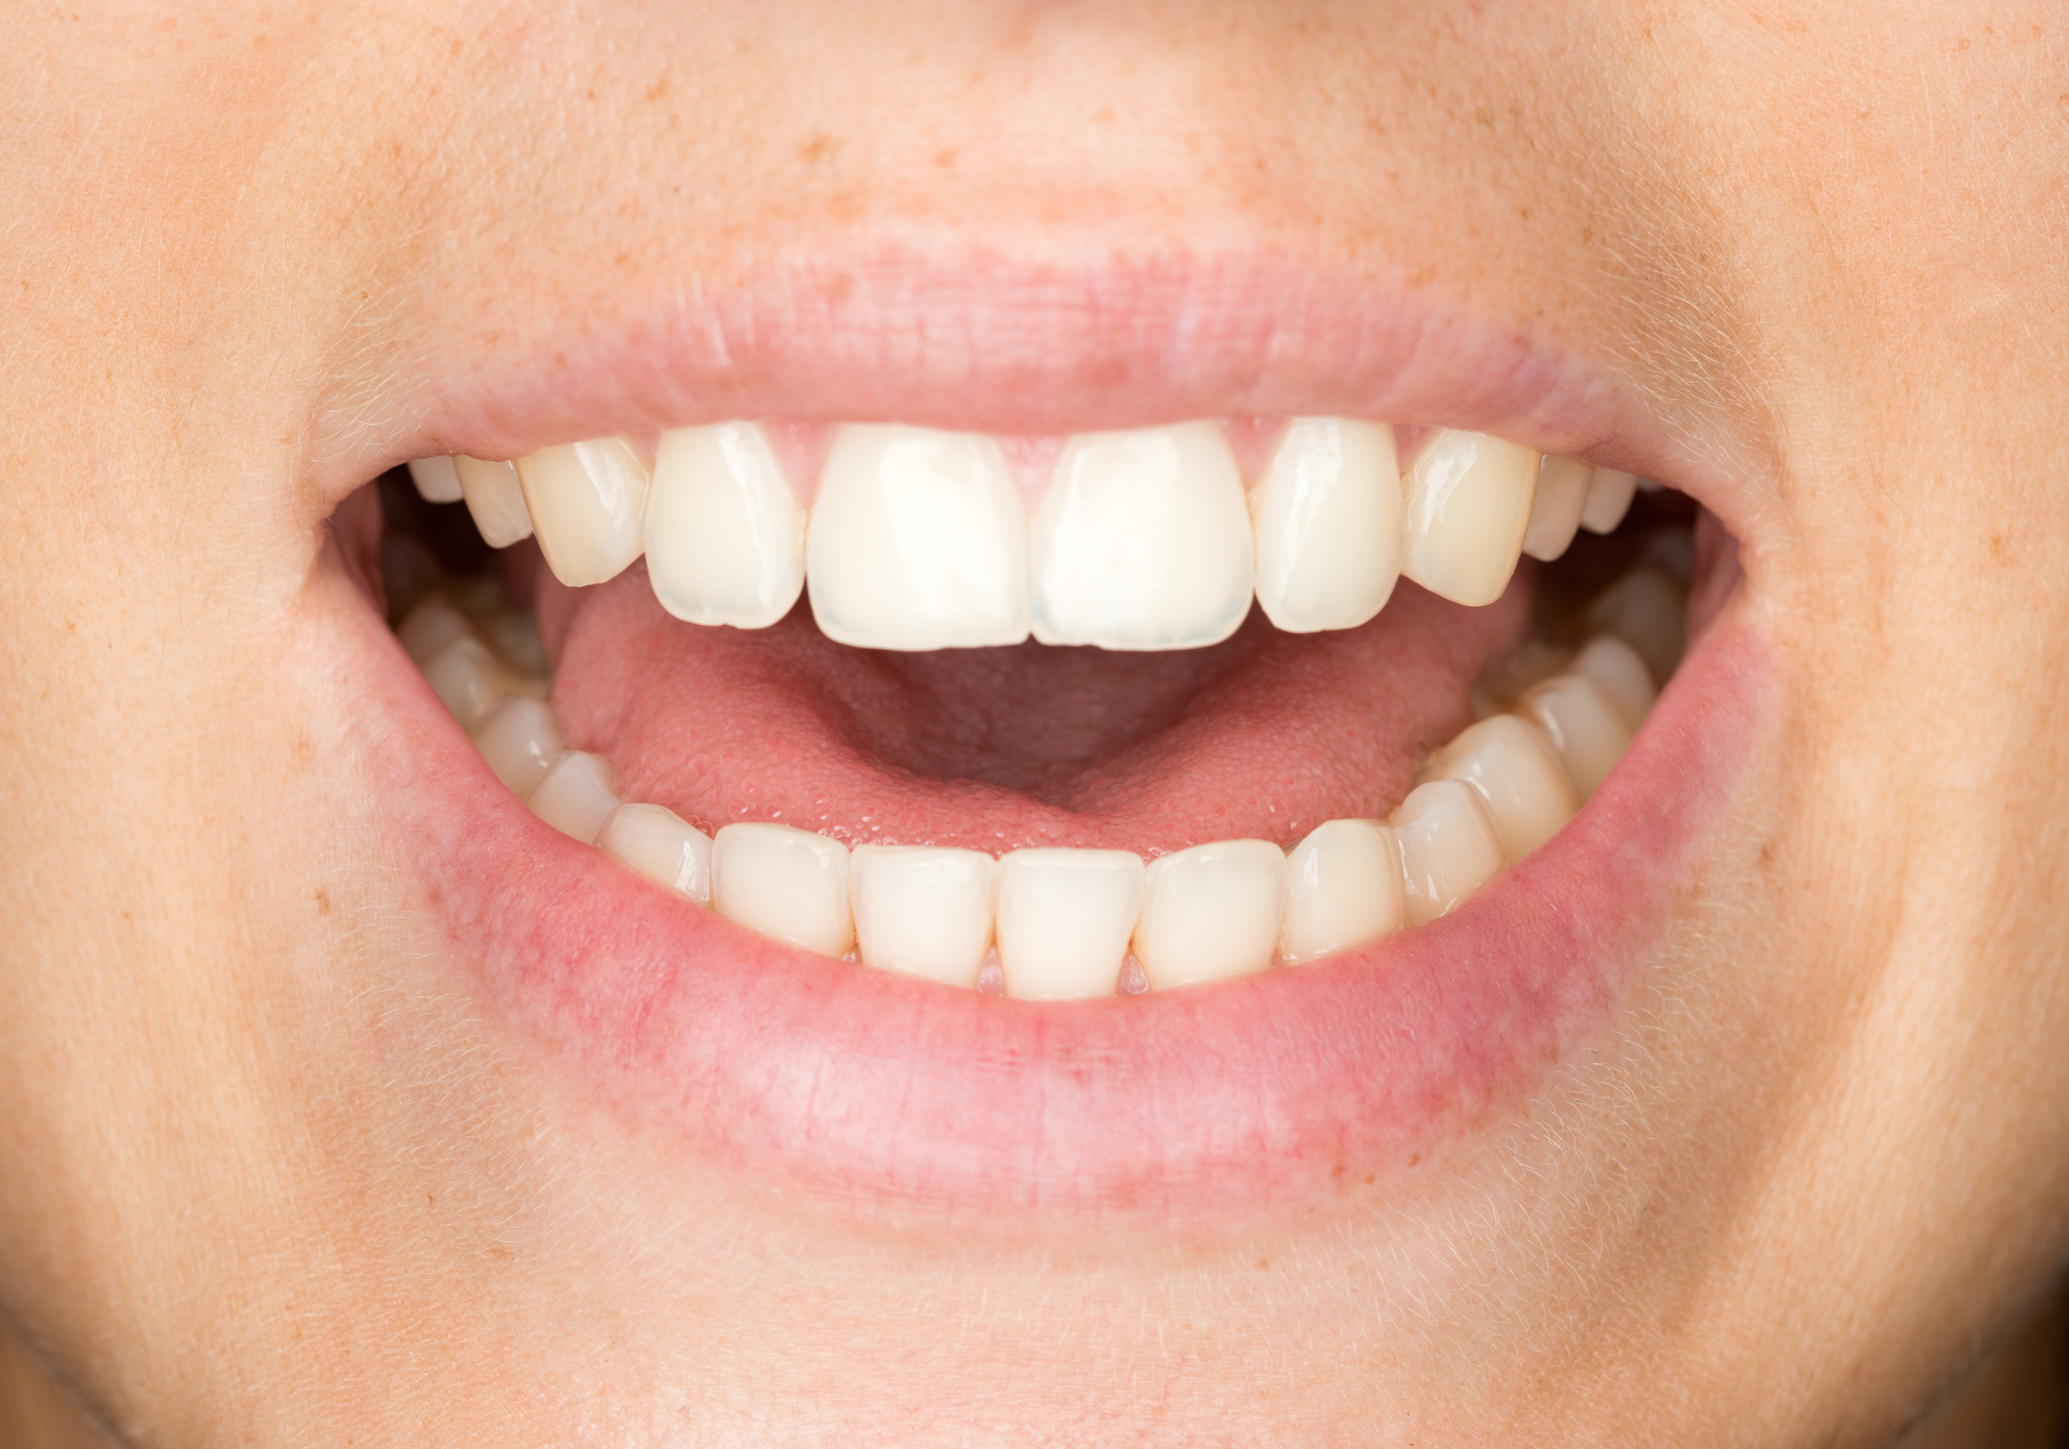 stock photo of a human smile